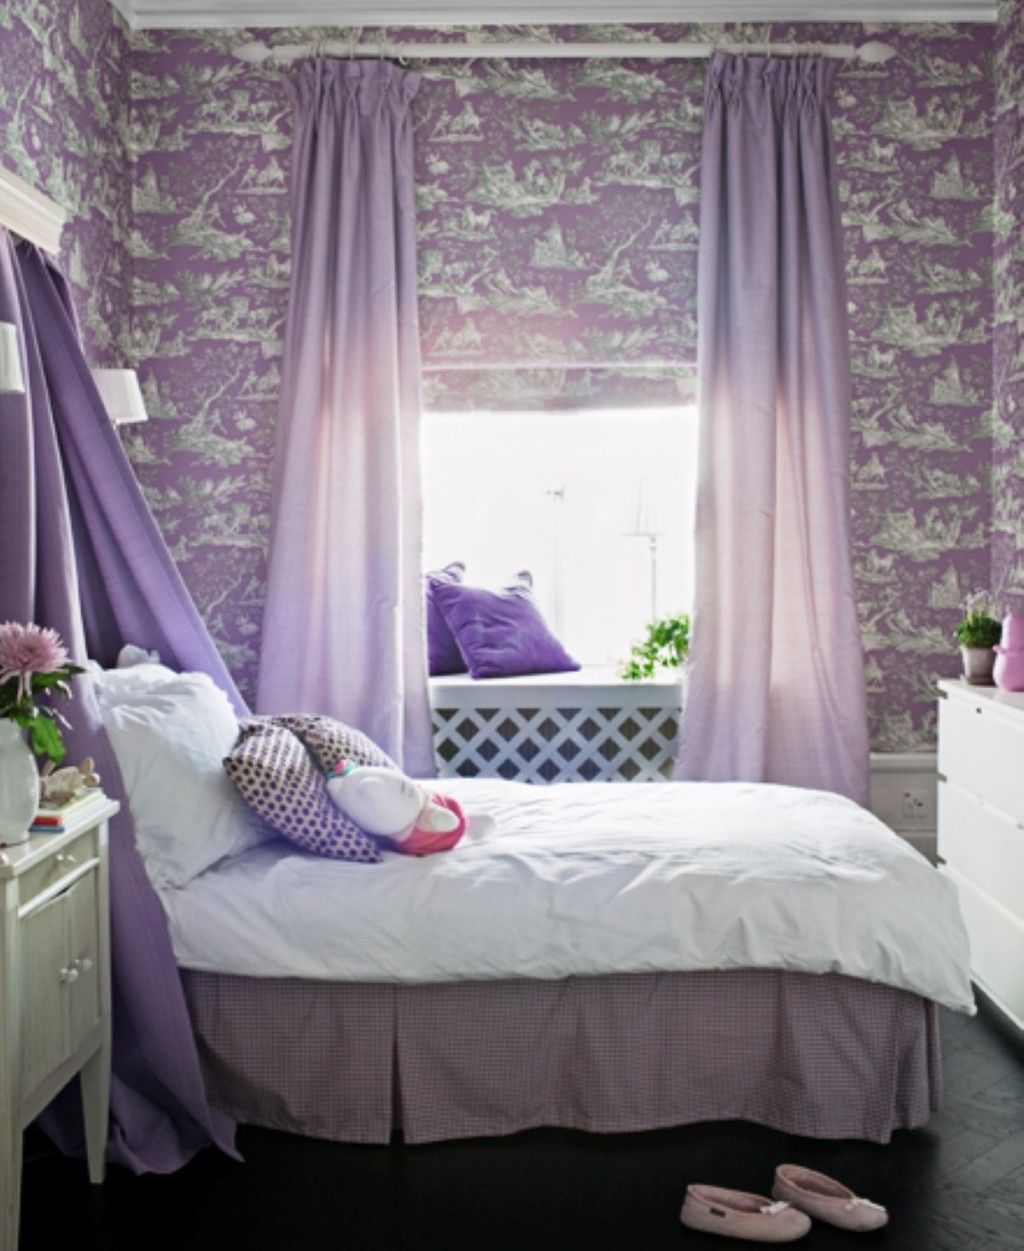 Delicieux #Kids Room : Purple Bedroom For A Girl With Purple Curtains Also Black  Flooring And White Cabinet Plus Comfy Bed Design Ideas: Amazing Girls Room  Design ...